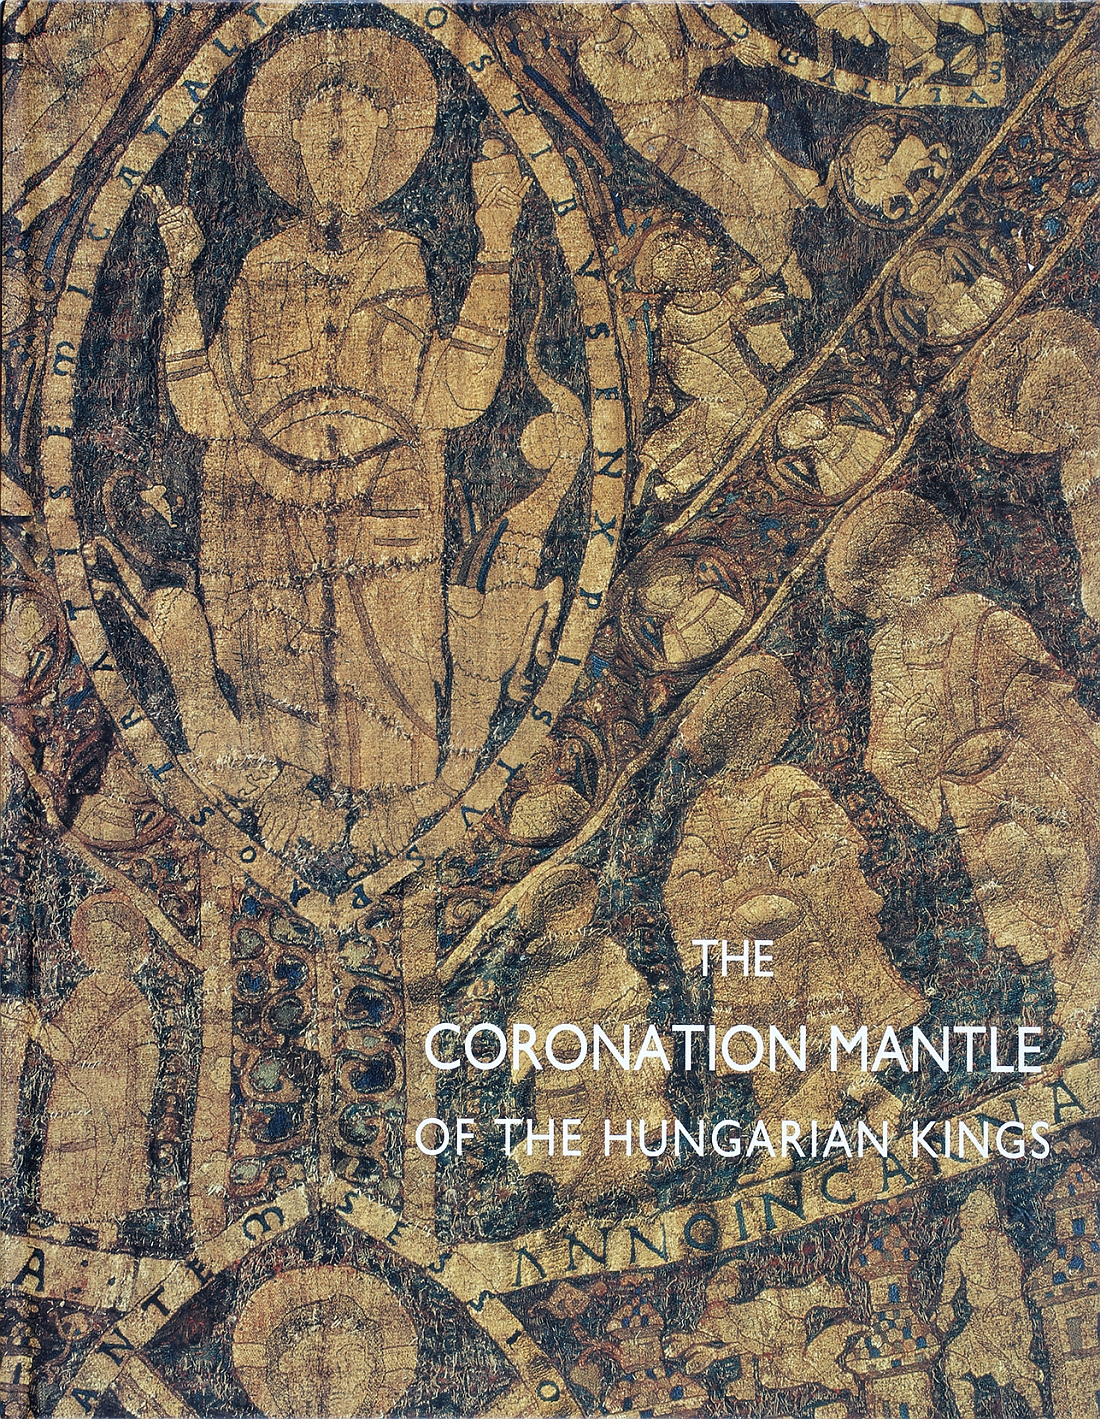 Book | The Coronation Mantle of the Hungarian Kings